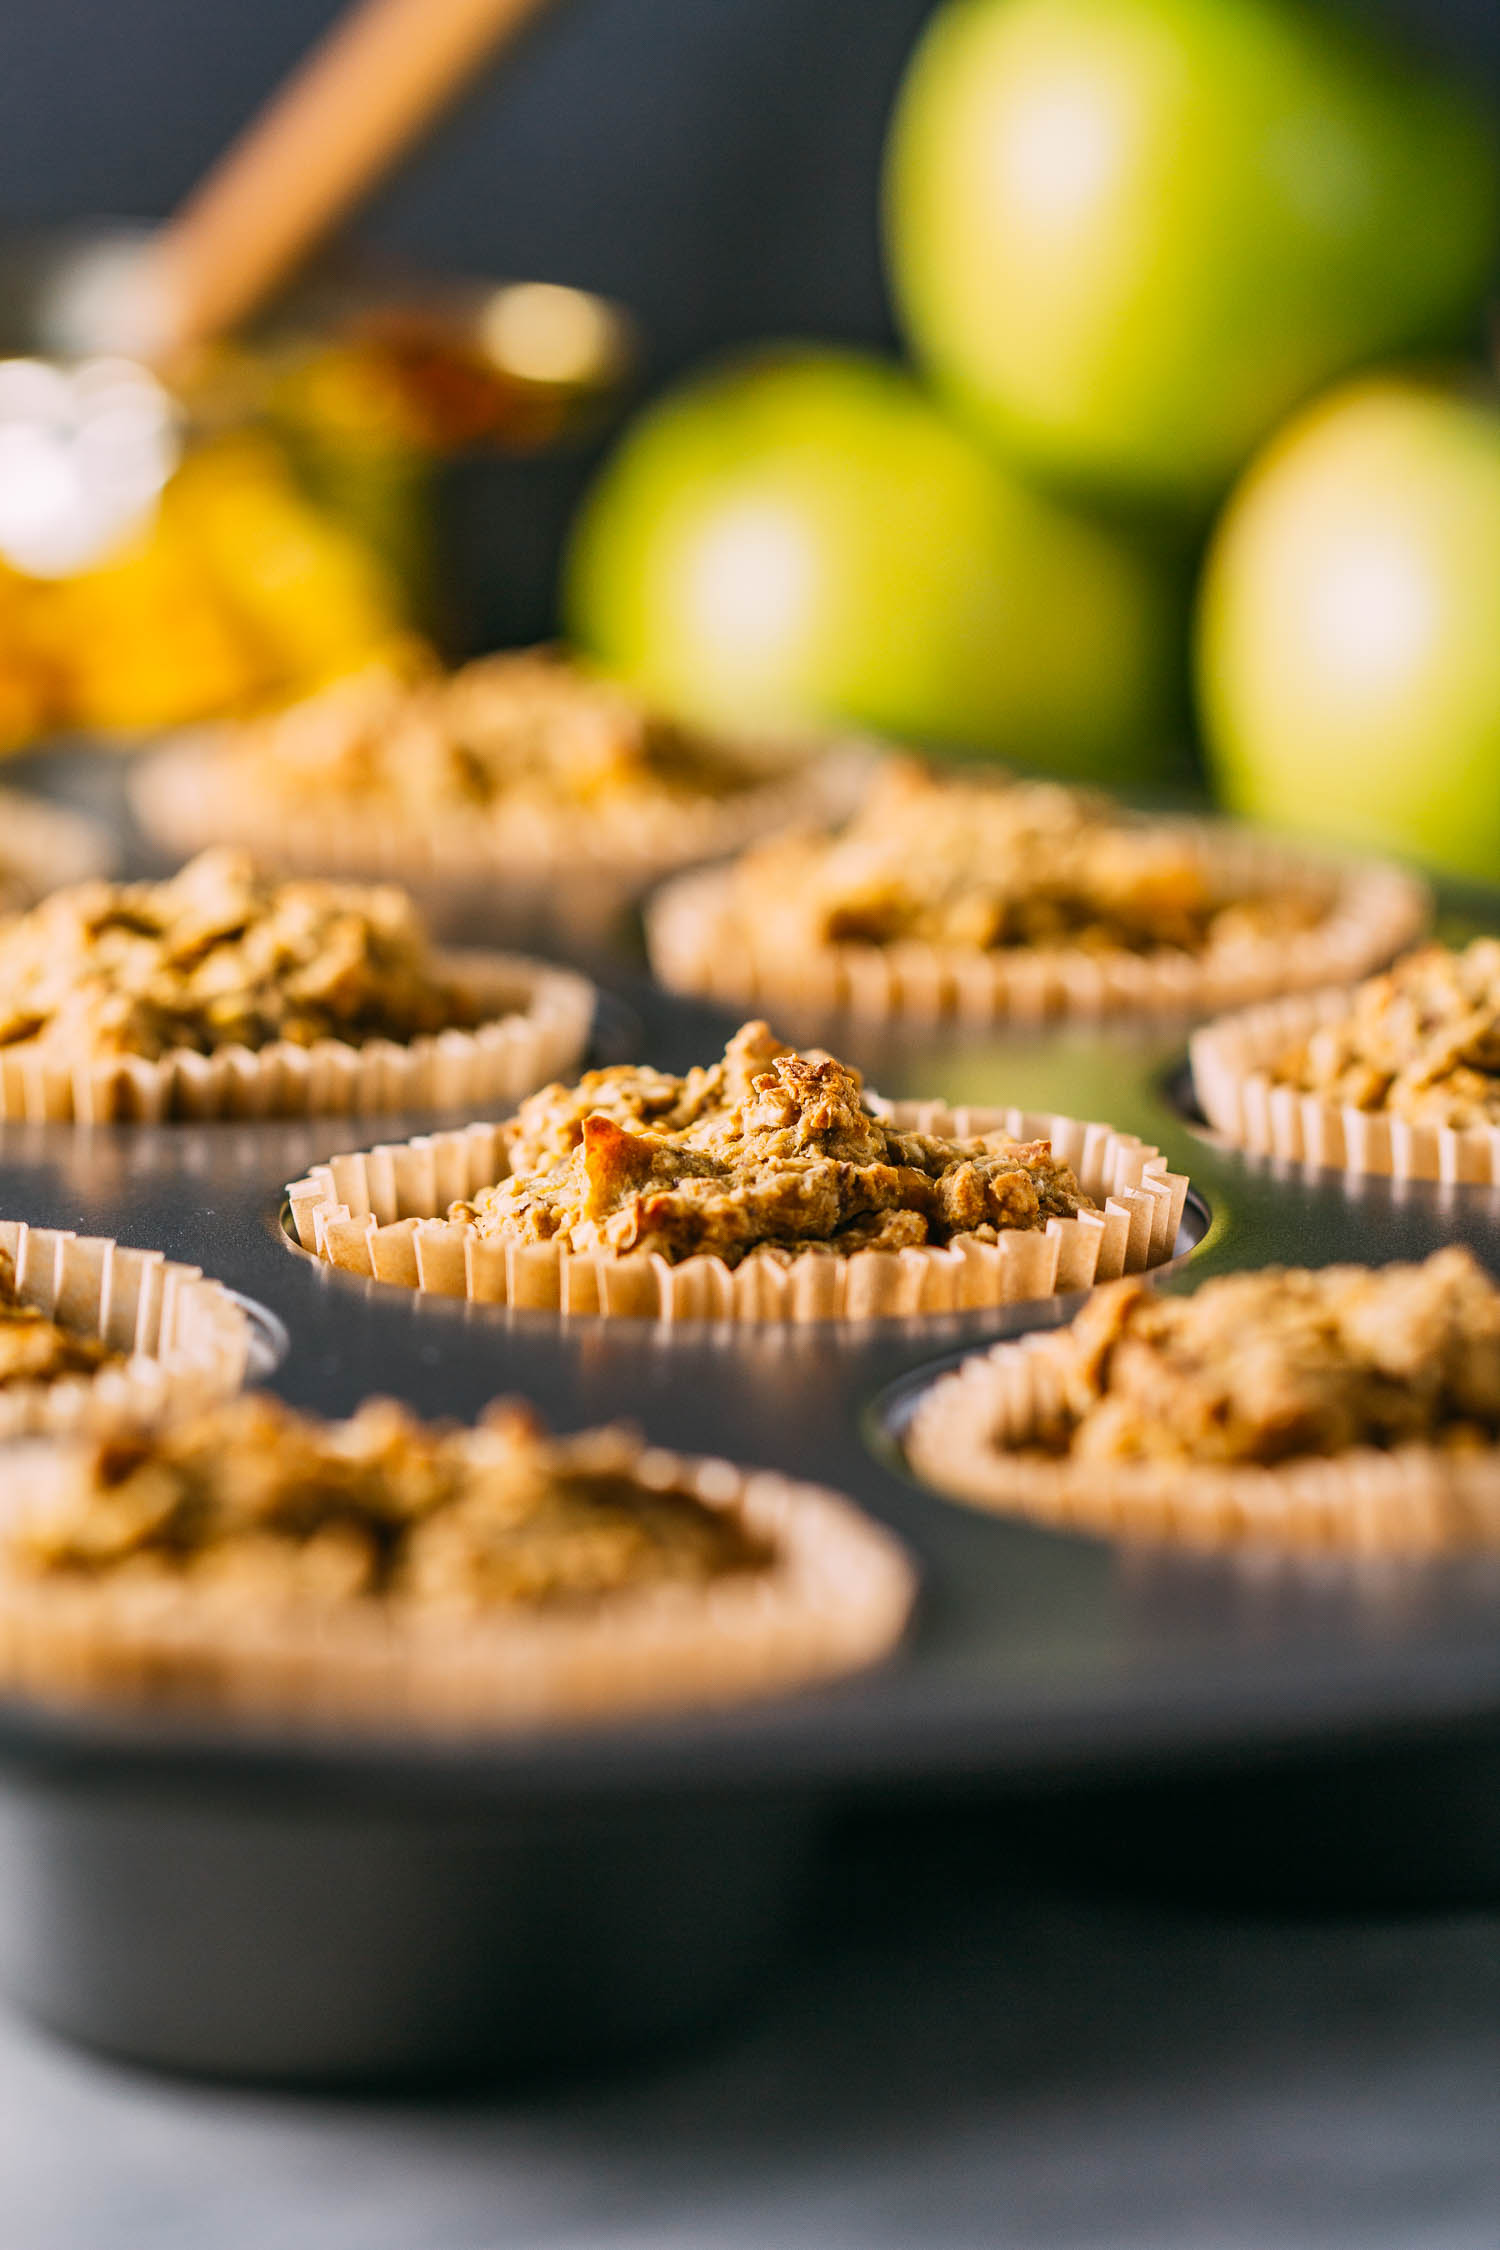 Southern Style Stuffing Muffins #stuffing #muffins #wfpb #plant-based #wfpbno #refined oil-free #gluten-free #vegan #recipe #healthy #recipes #holiday #Thanksgiving #Christmas #side dish #holidays #corn #cornbread #sage #oats #almond flour #bread